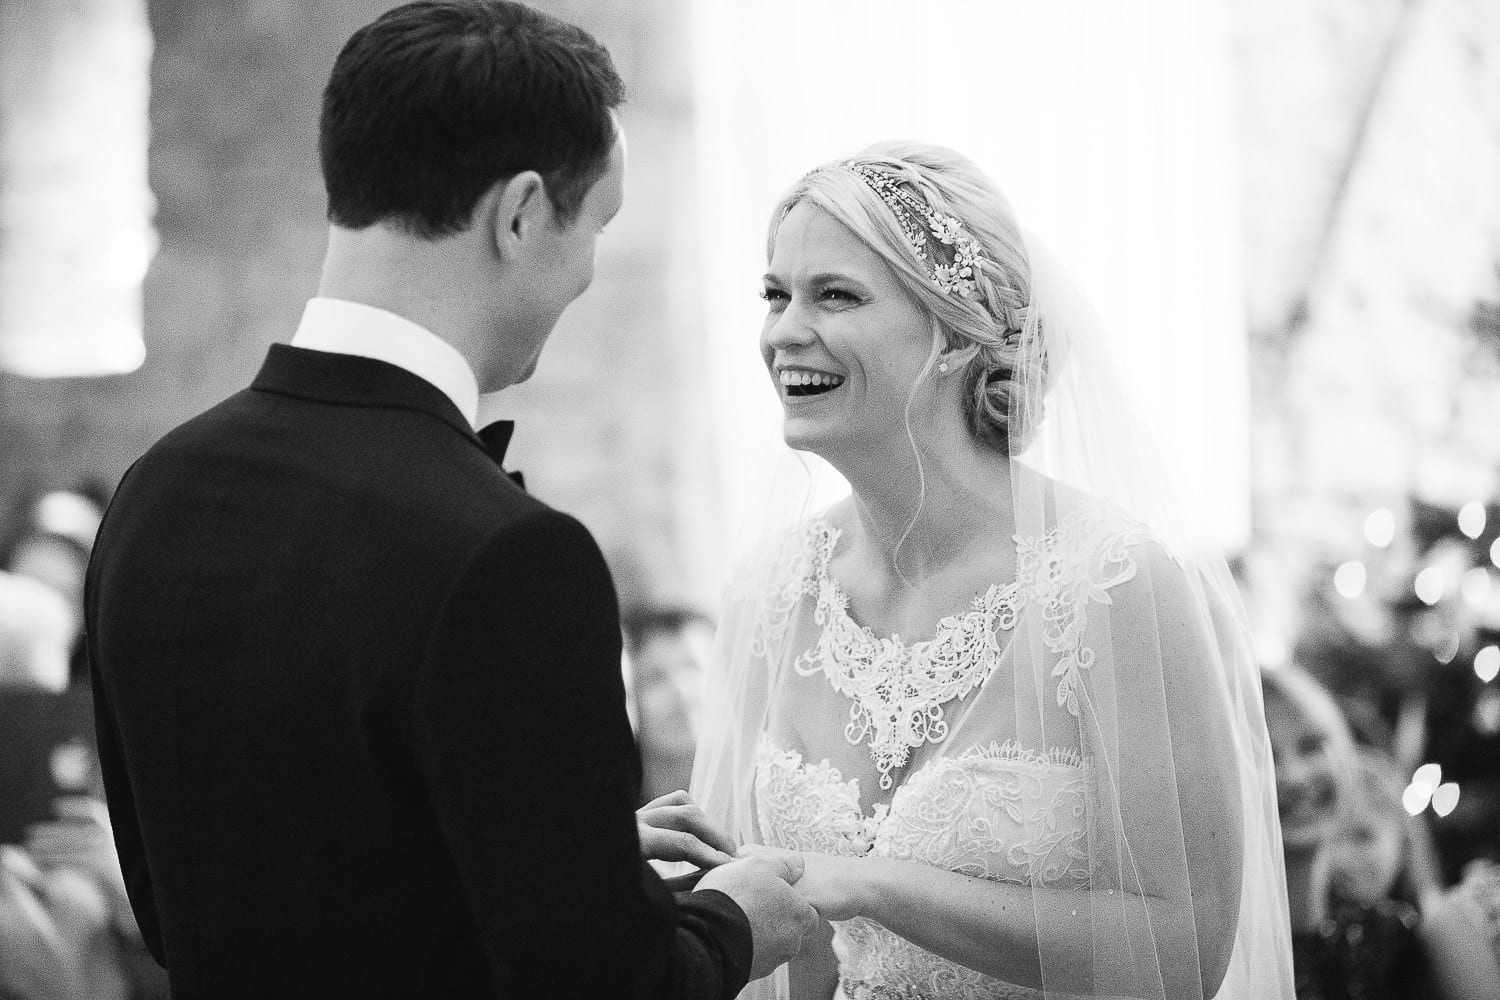 Black and white image of bride and groom ring exchange